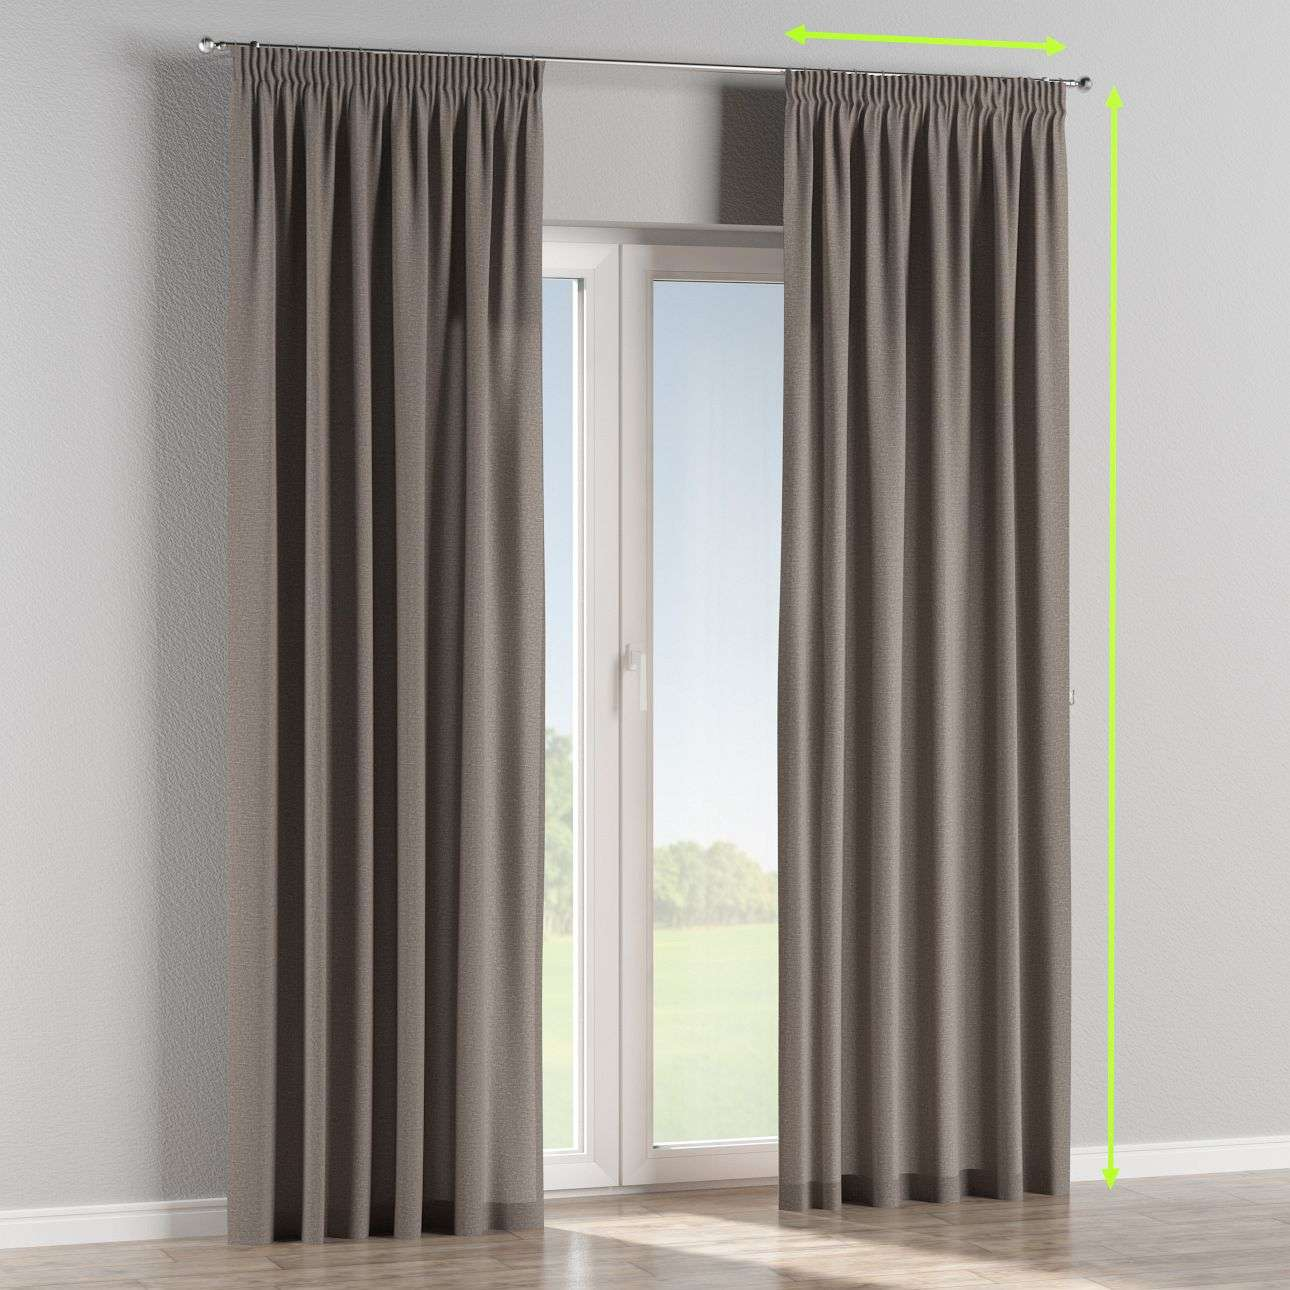 Pencil pleat lined curtains in collection Edinburgh, fabric: 115-81